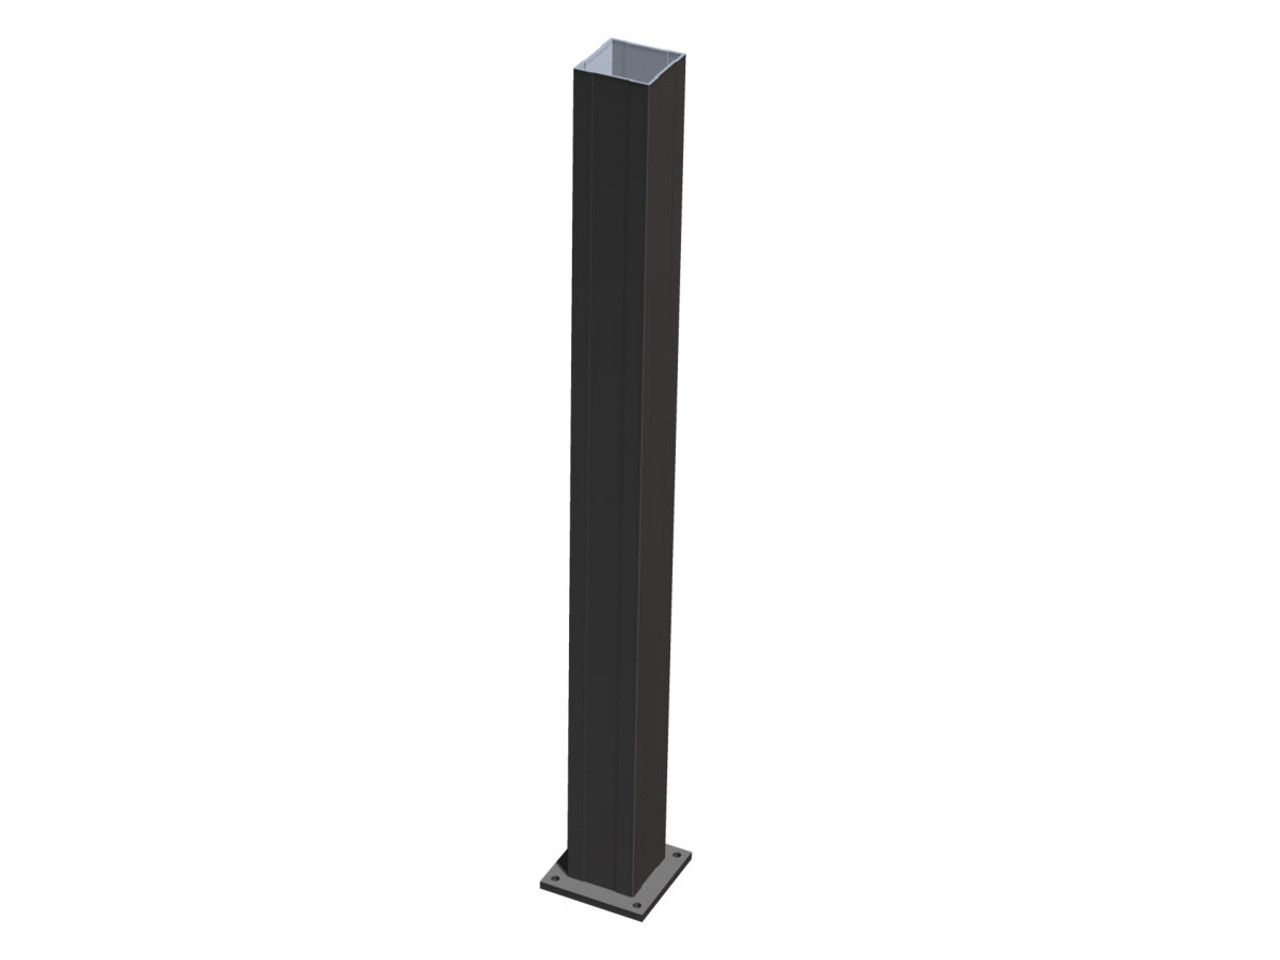 Aluminum Newel Post for Key-Link Railing